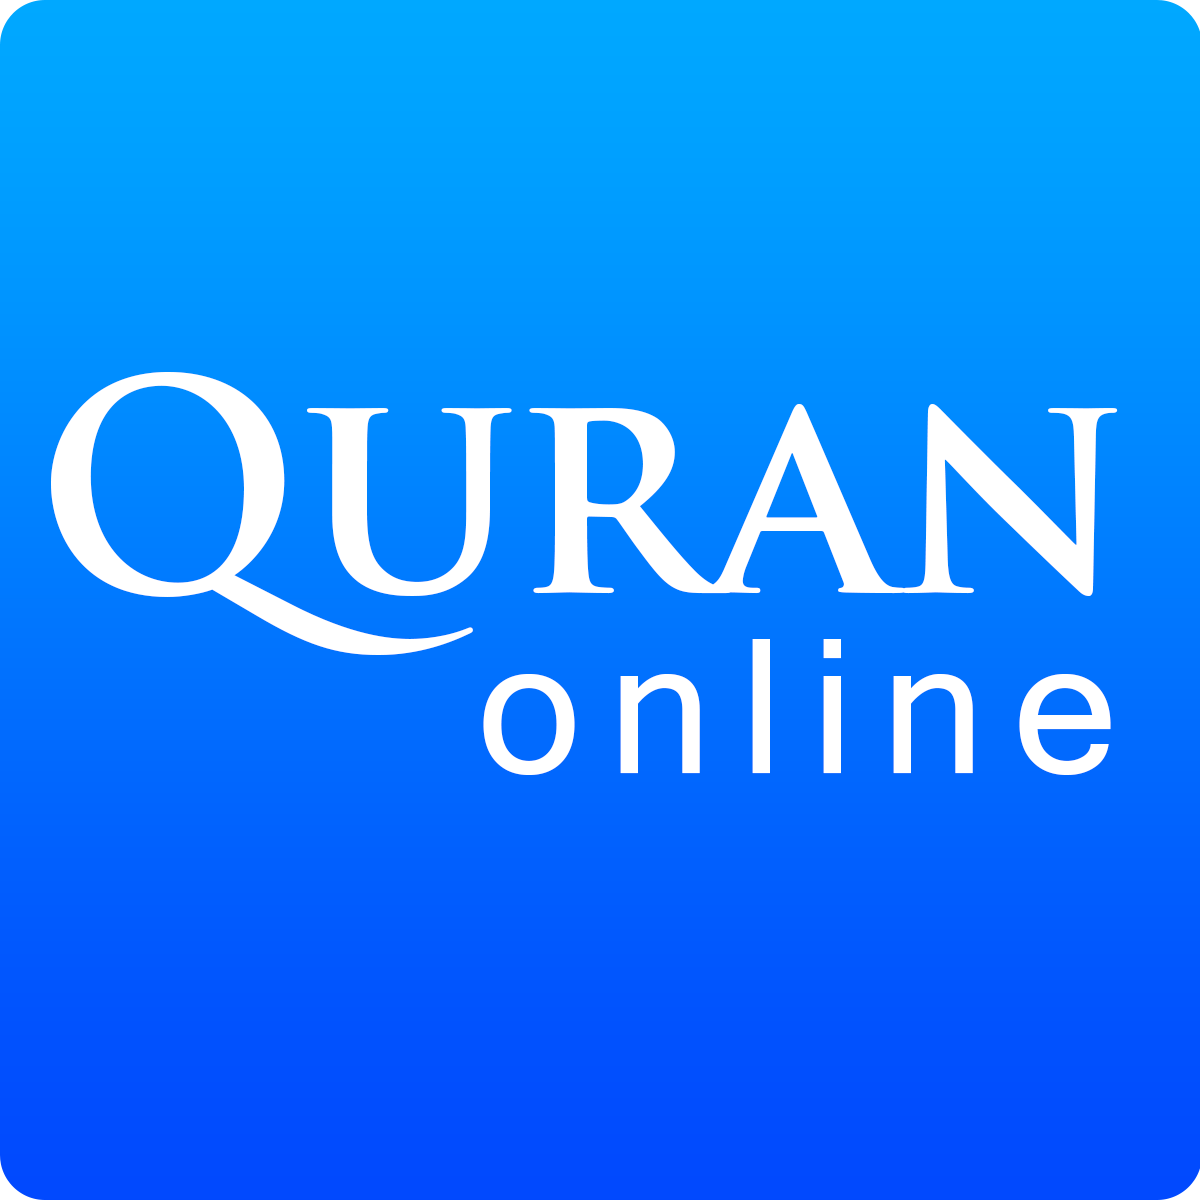 Quran with Translations - Read, Listen, Search